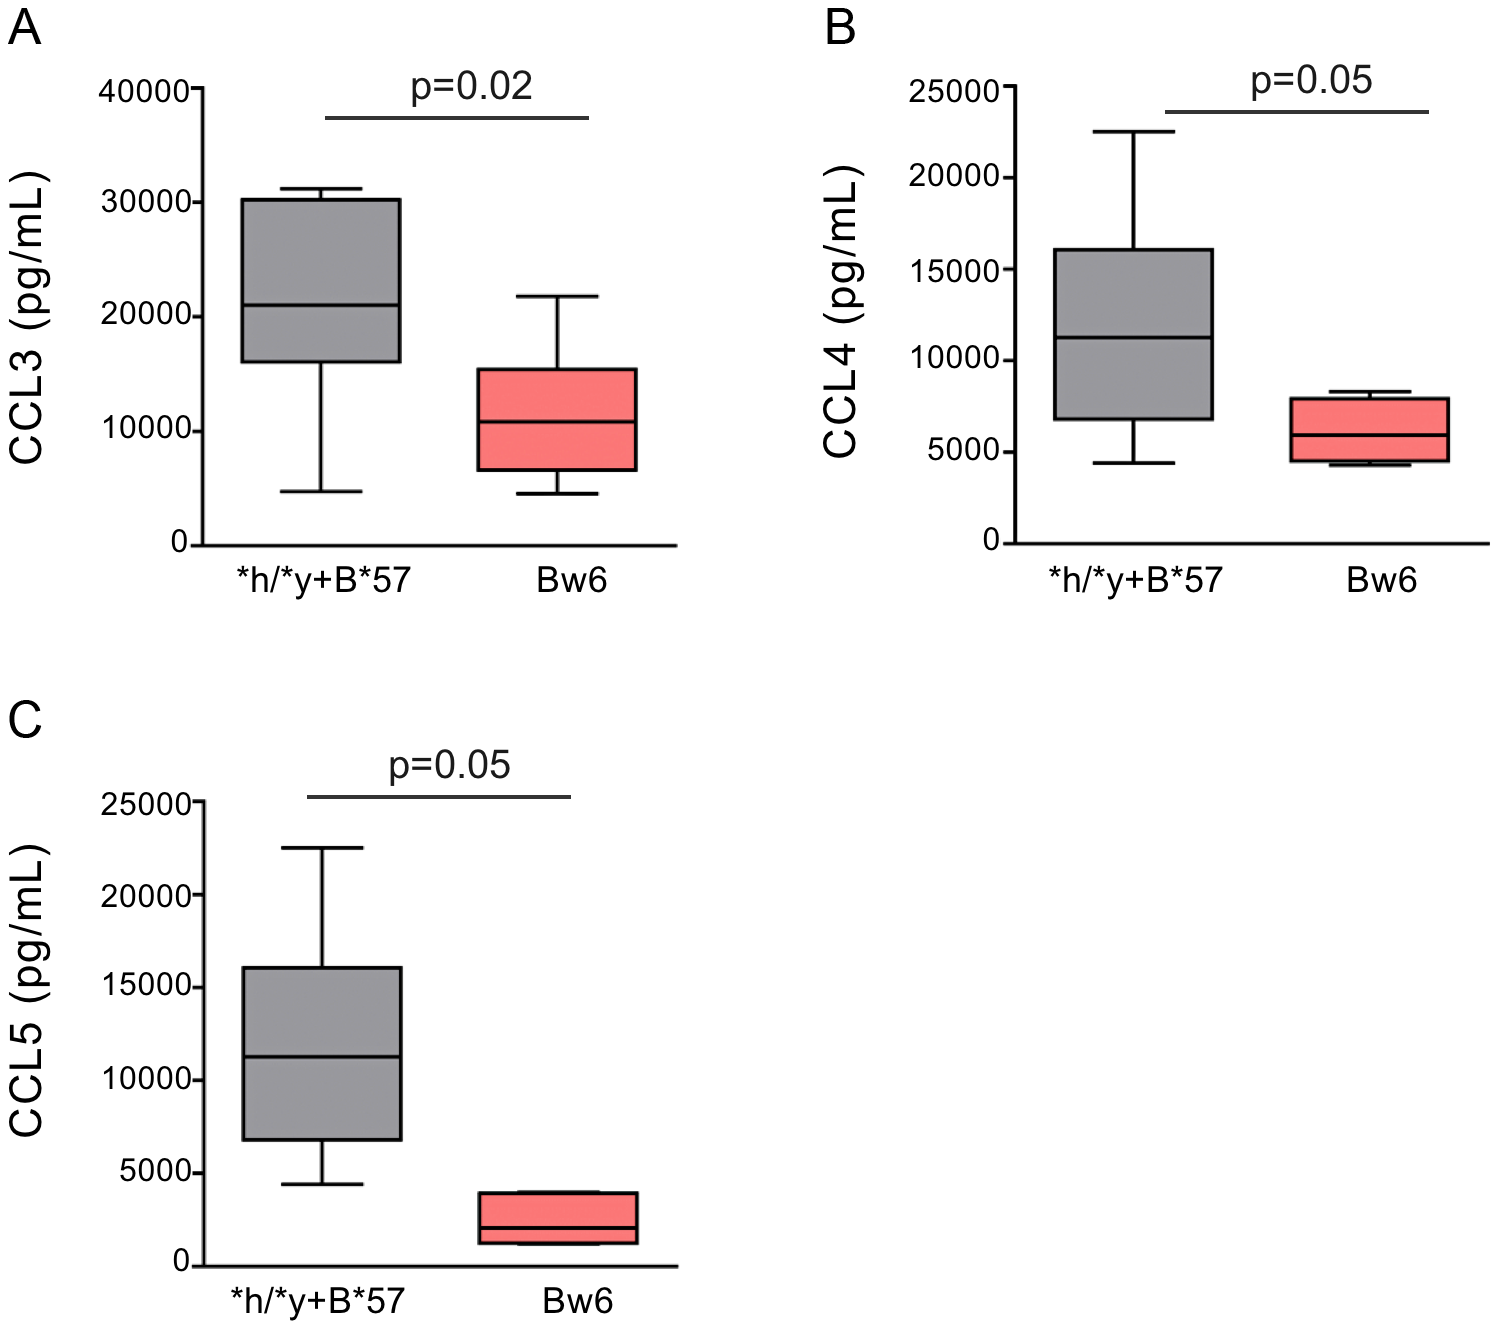 NK cells from subjects positive for <i>*h/*y+B*57</i> secrete more CC-chemokines in response to autologous HIV infected CD4 (iCD4) cells than those from <i>Bw6hmz</i>.